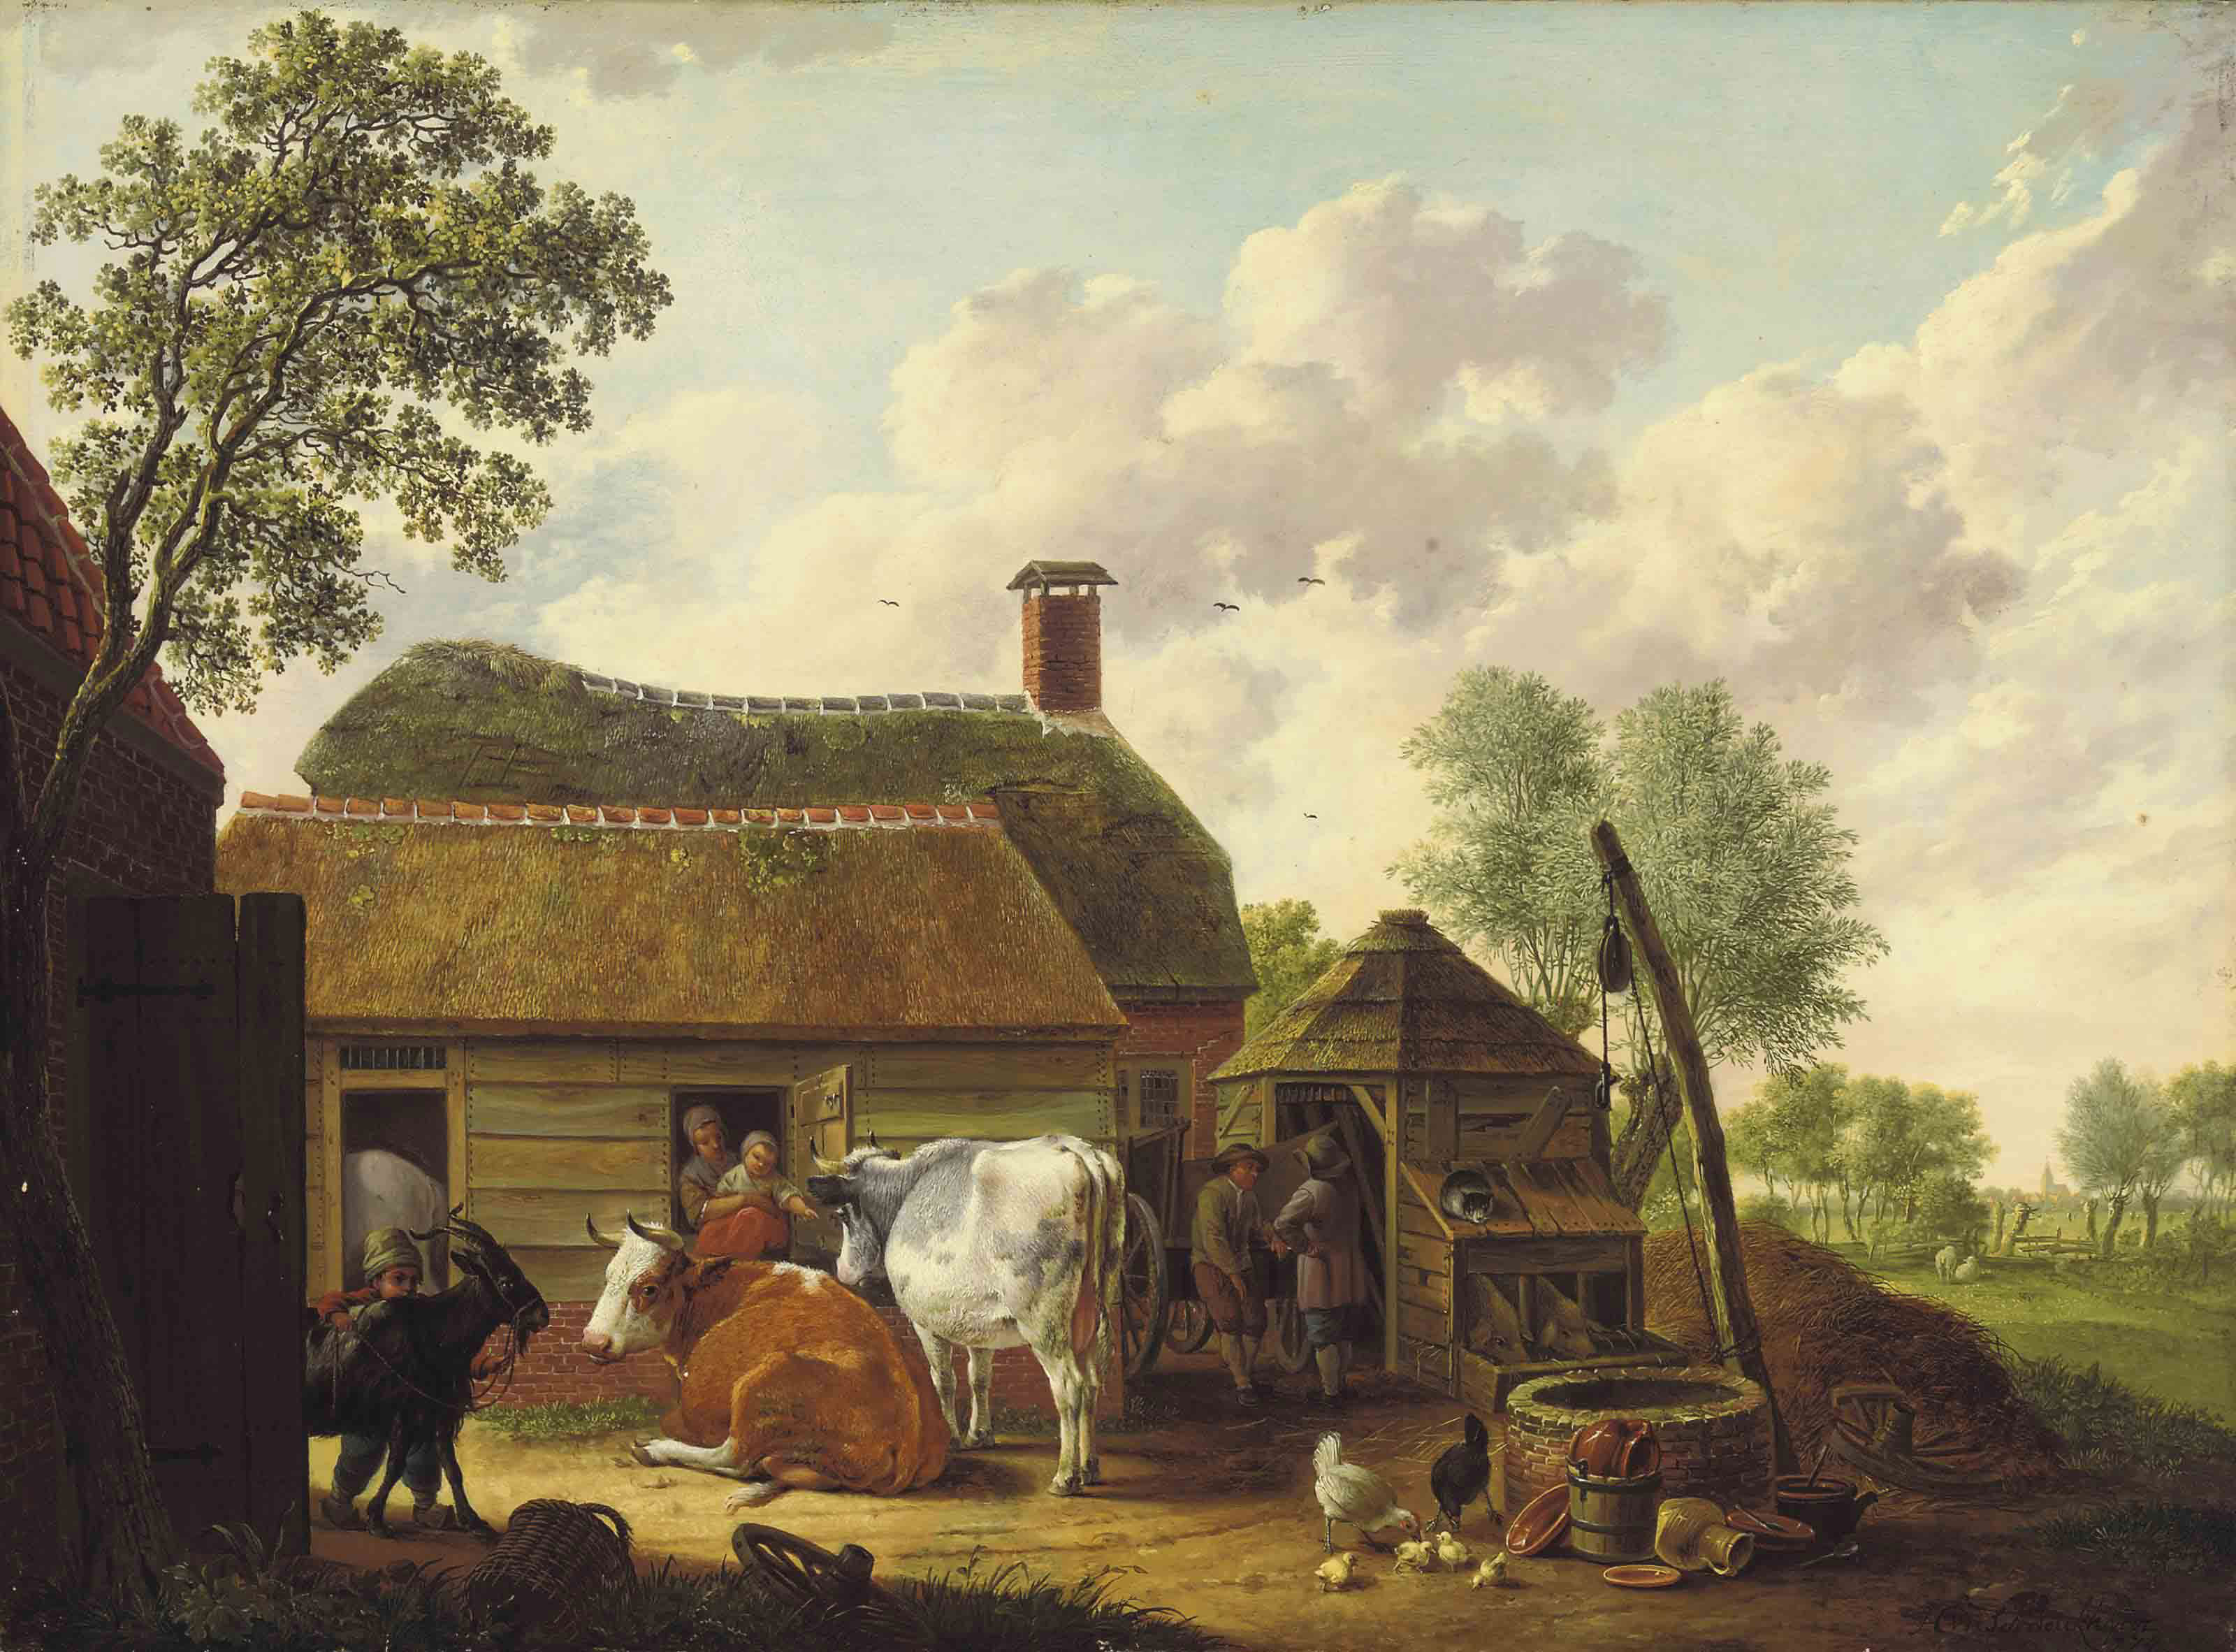 A farm scene with peasants, cattle, chickens and a goat